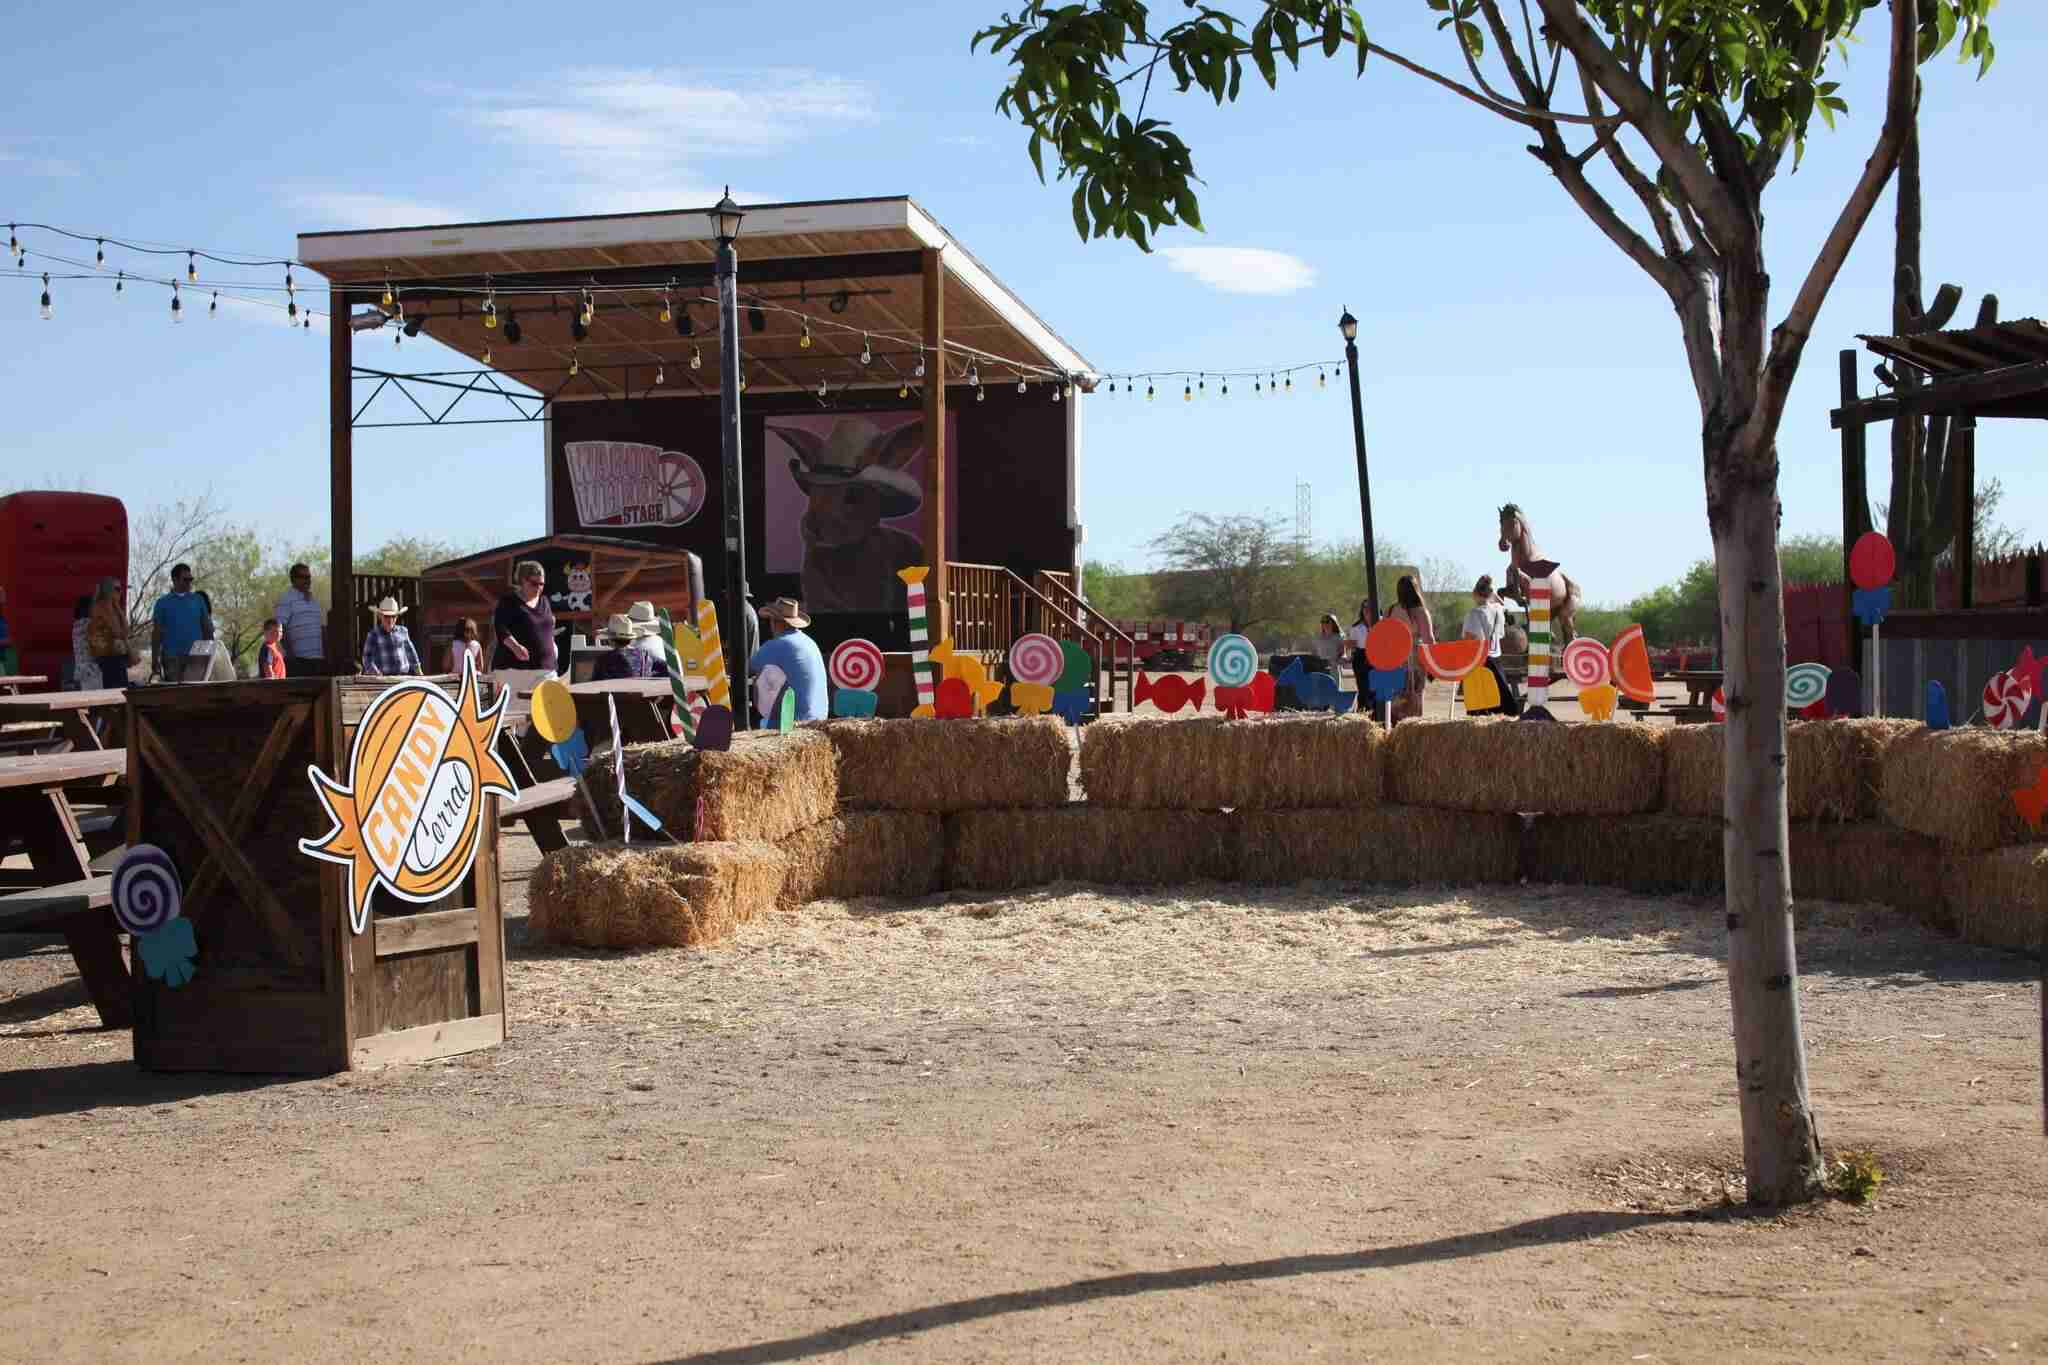 Rawhide Western Town & Event Center at Wild Horse Pass